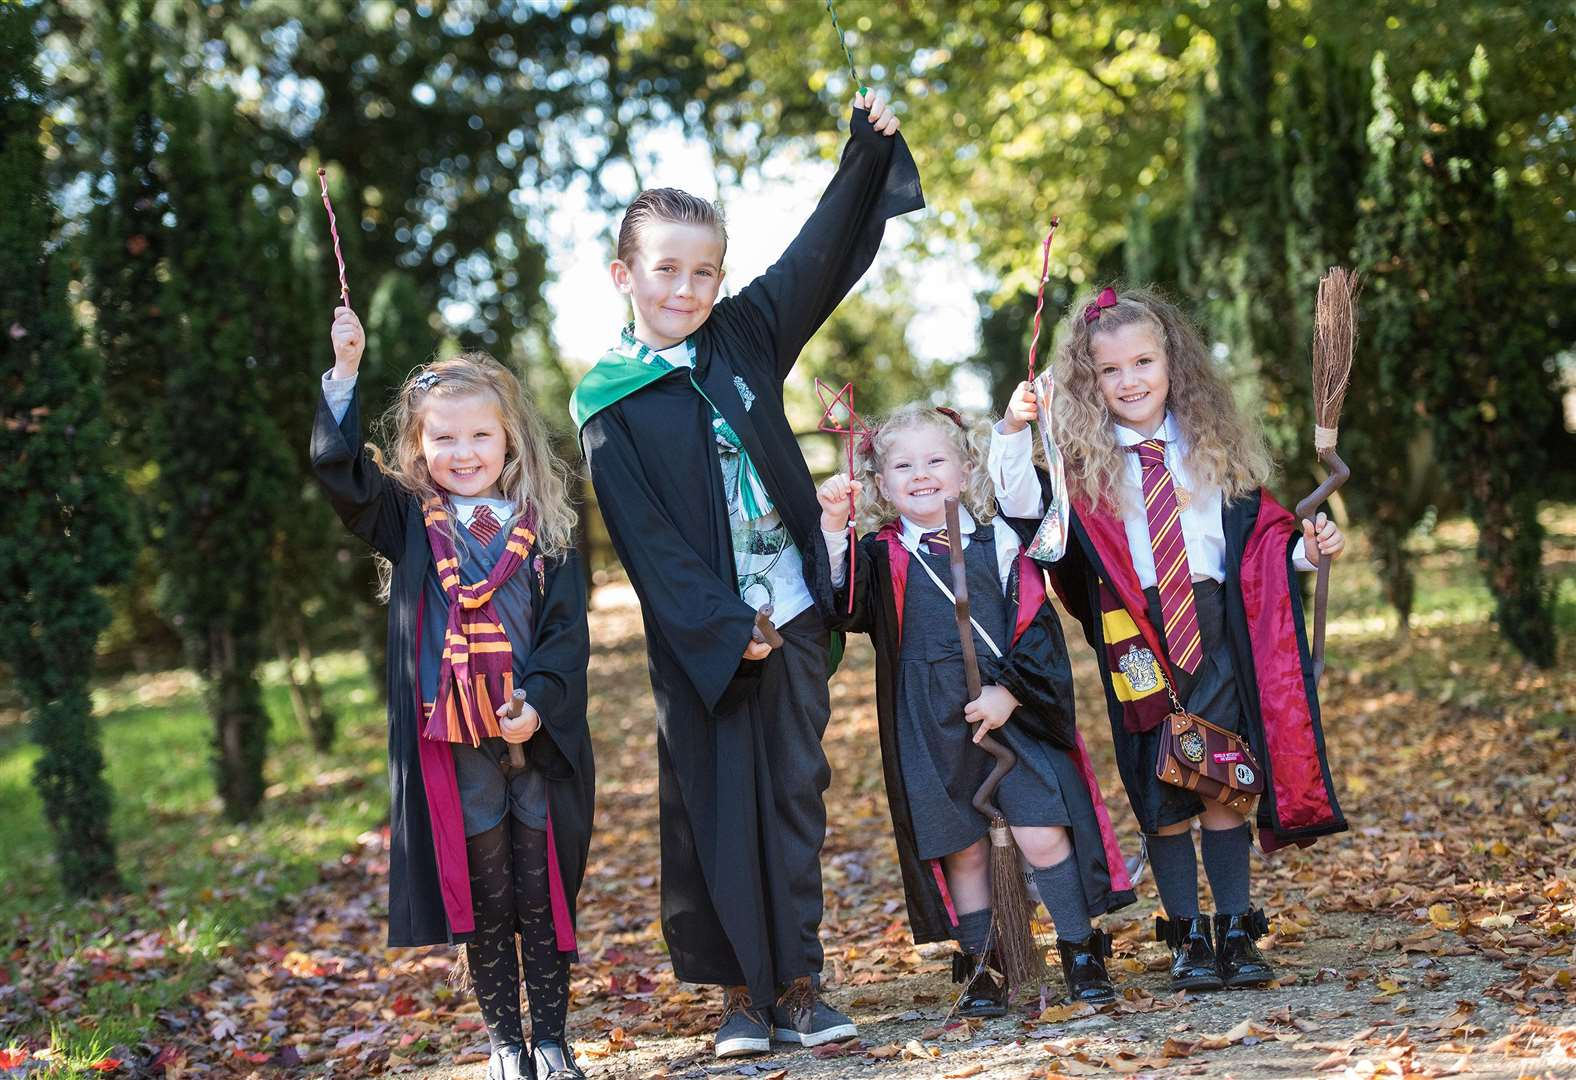 PICTURES: Kentwell Hall School of Sorcery adds magic touch to half-term